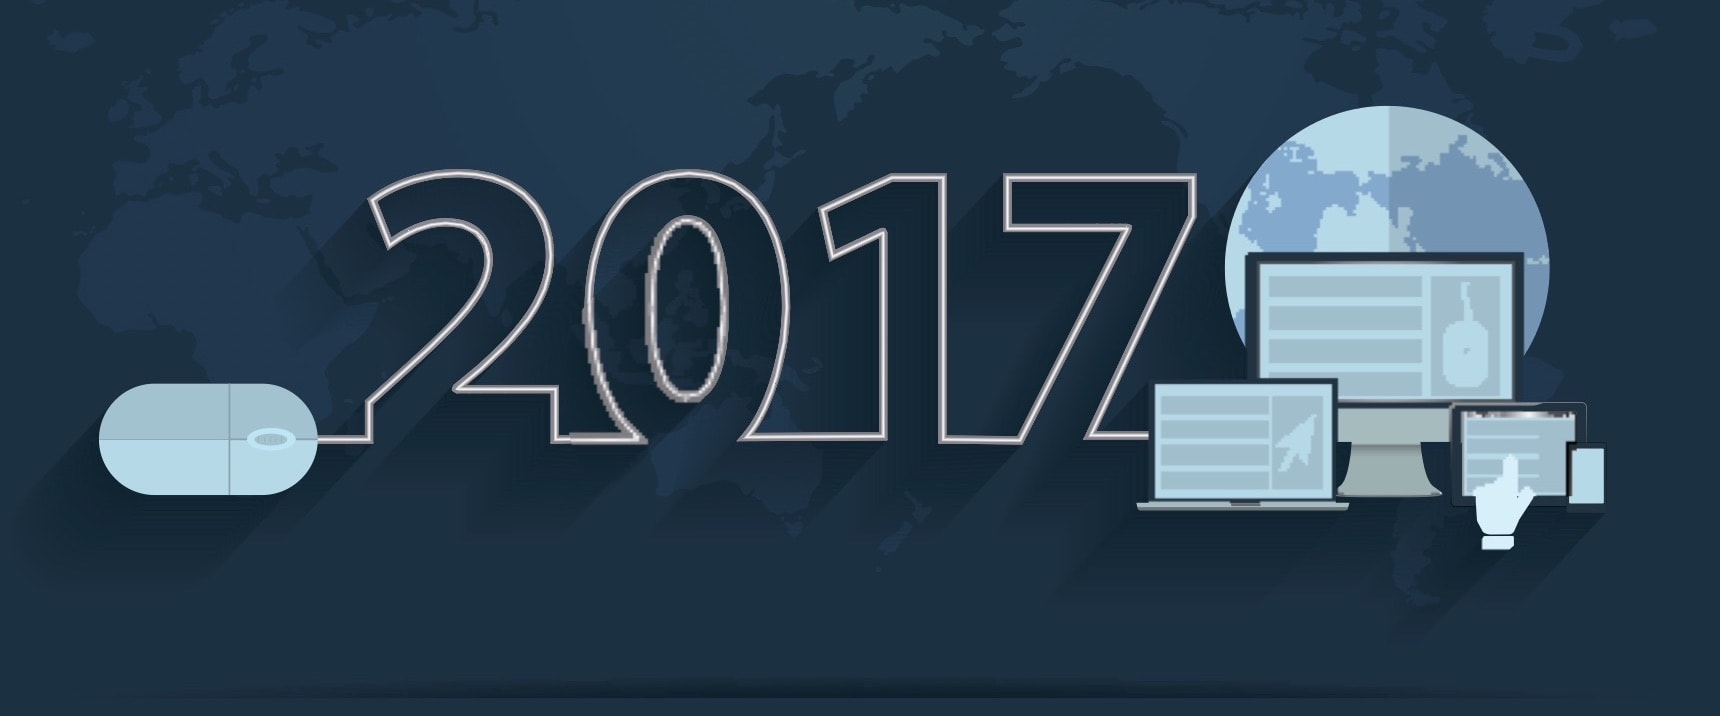 11 Things that Make Marketing in 2017 Different From 2007